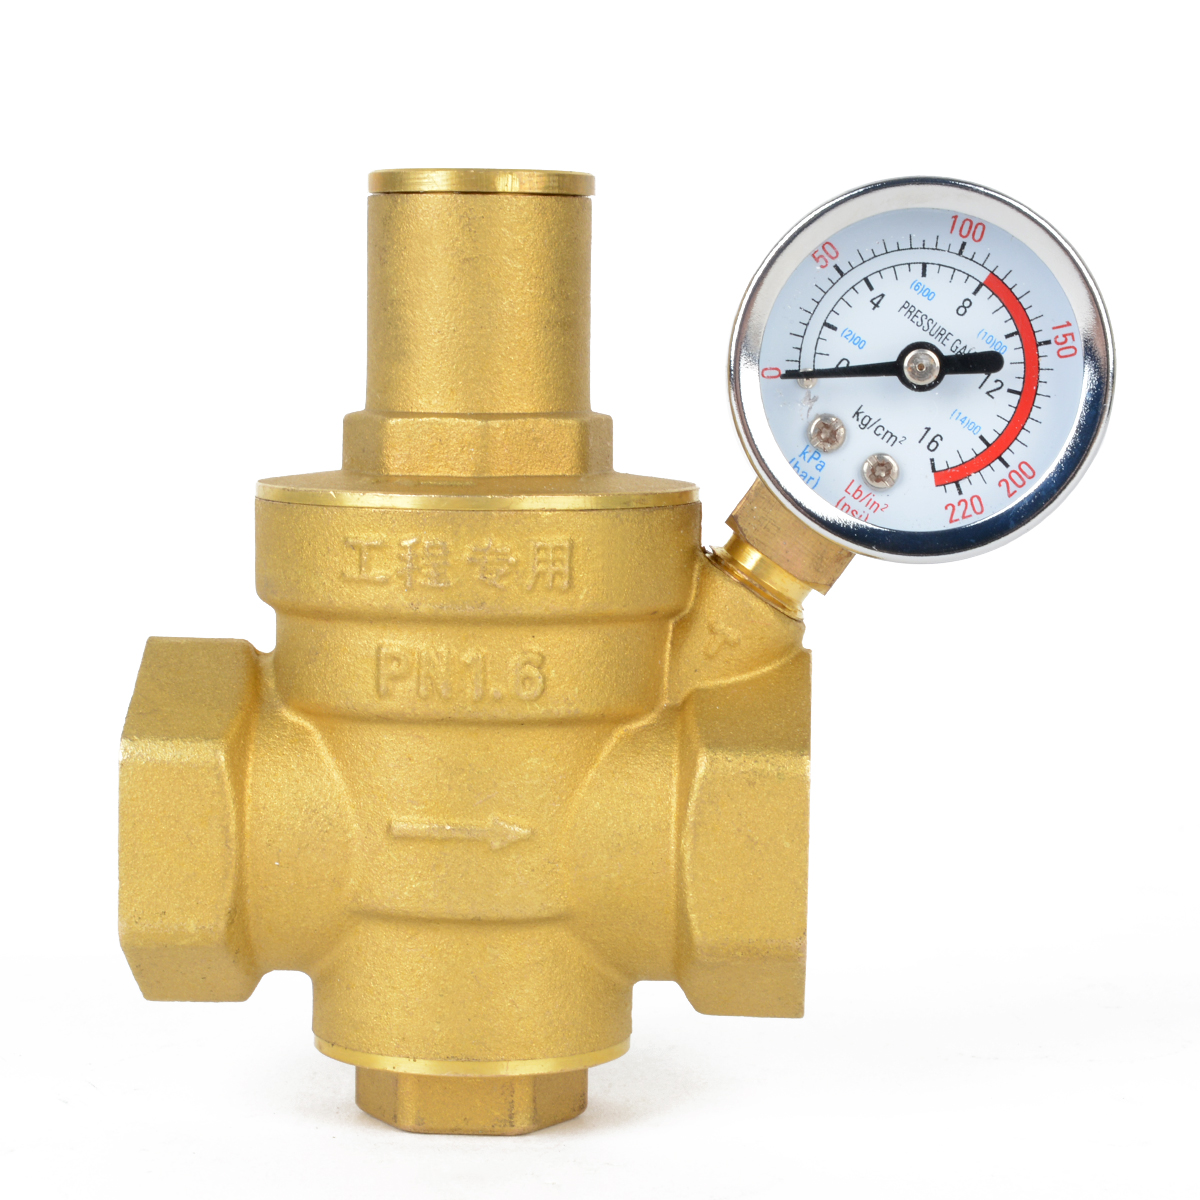 Adjustable DN15 NPT Water Reducing Valve 1 2 Brass Pressure Gauge Regulator Valves With Gauge Meter